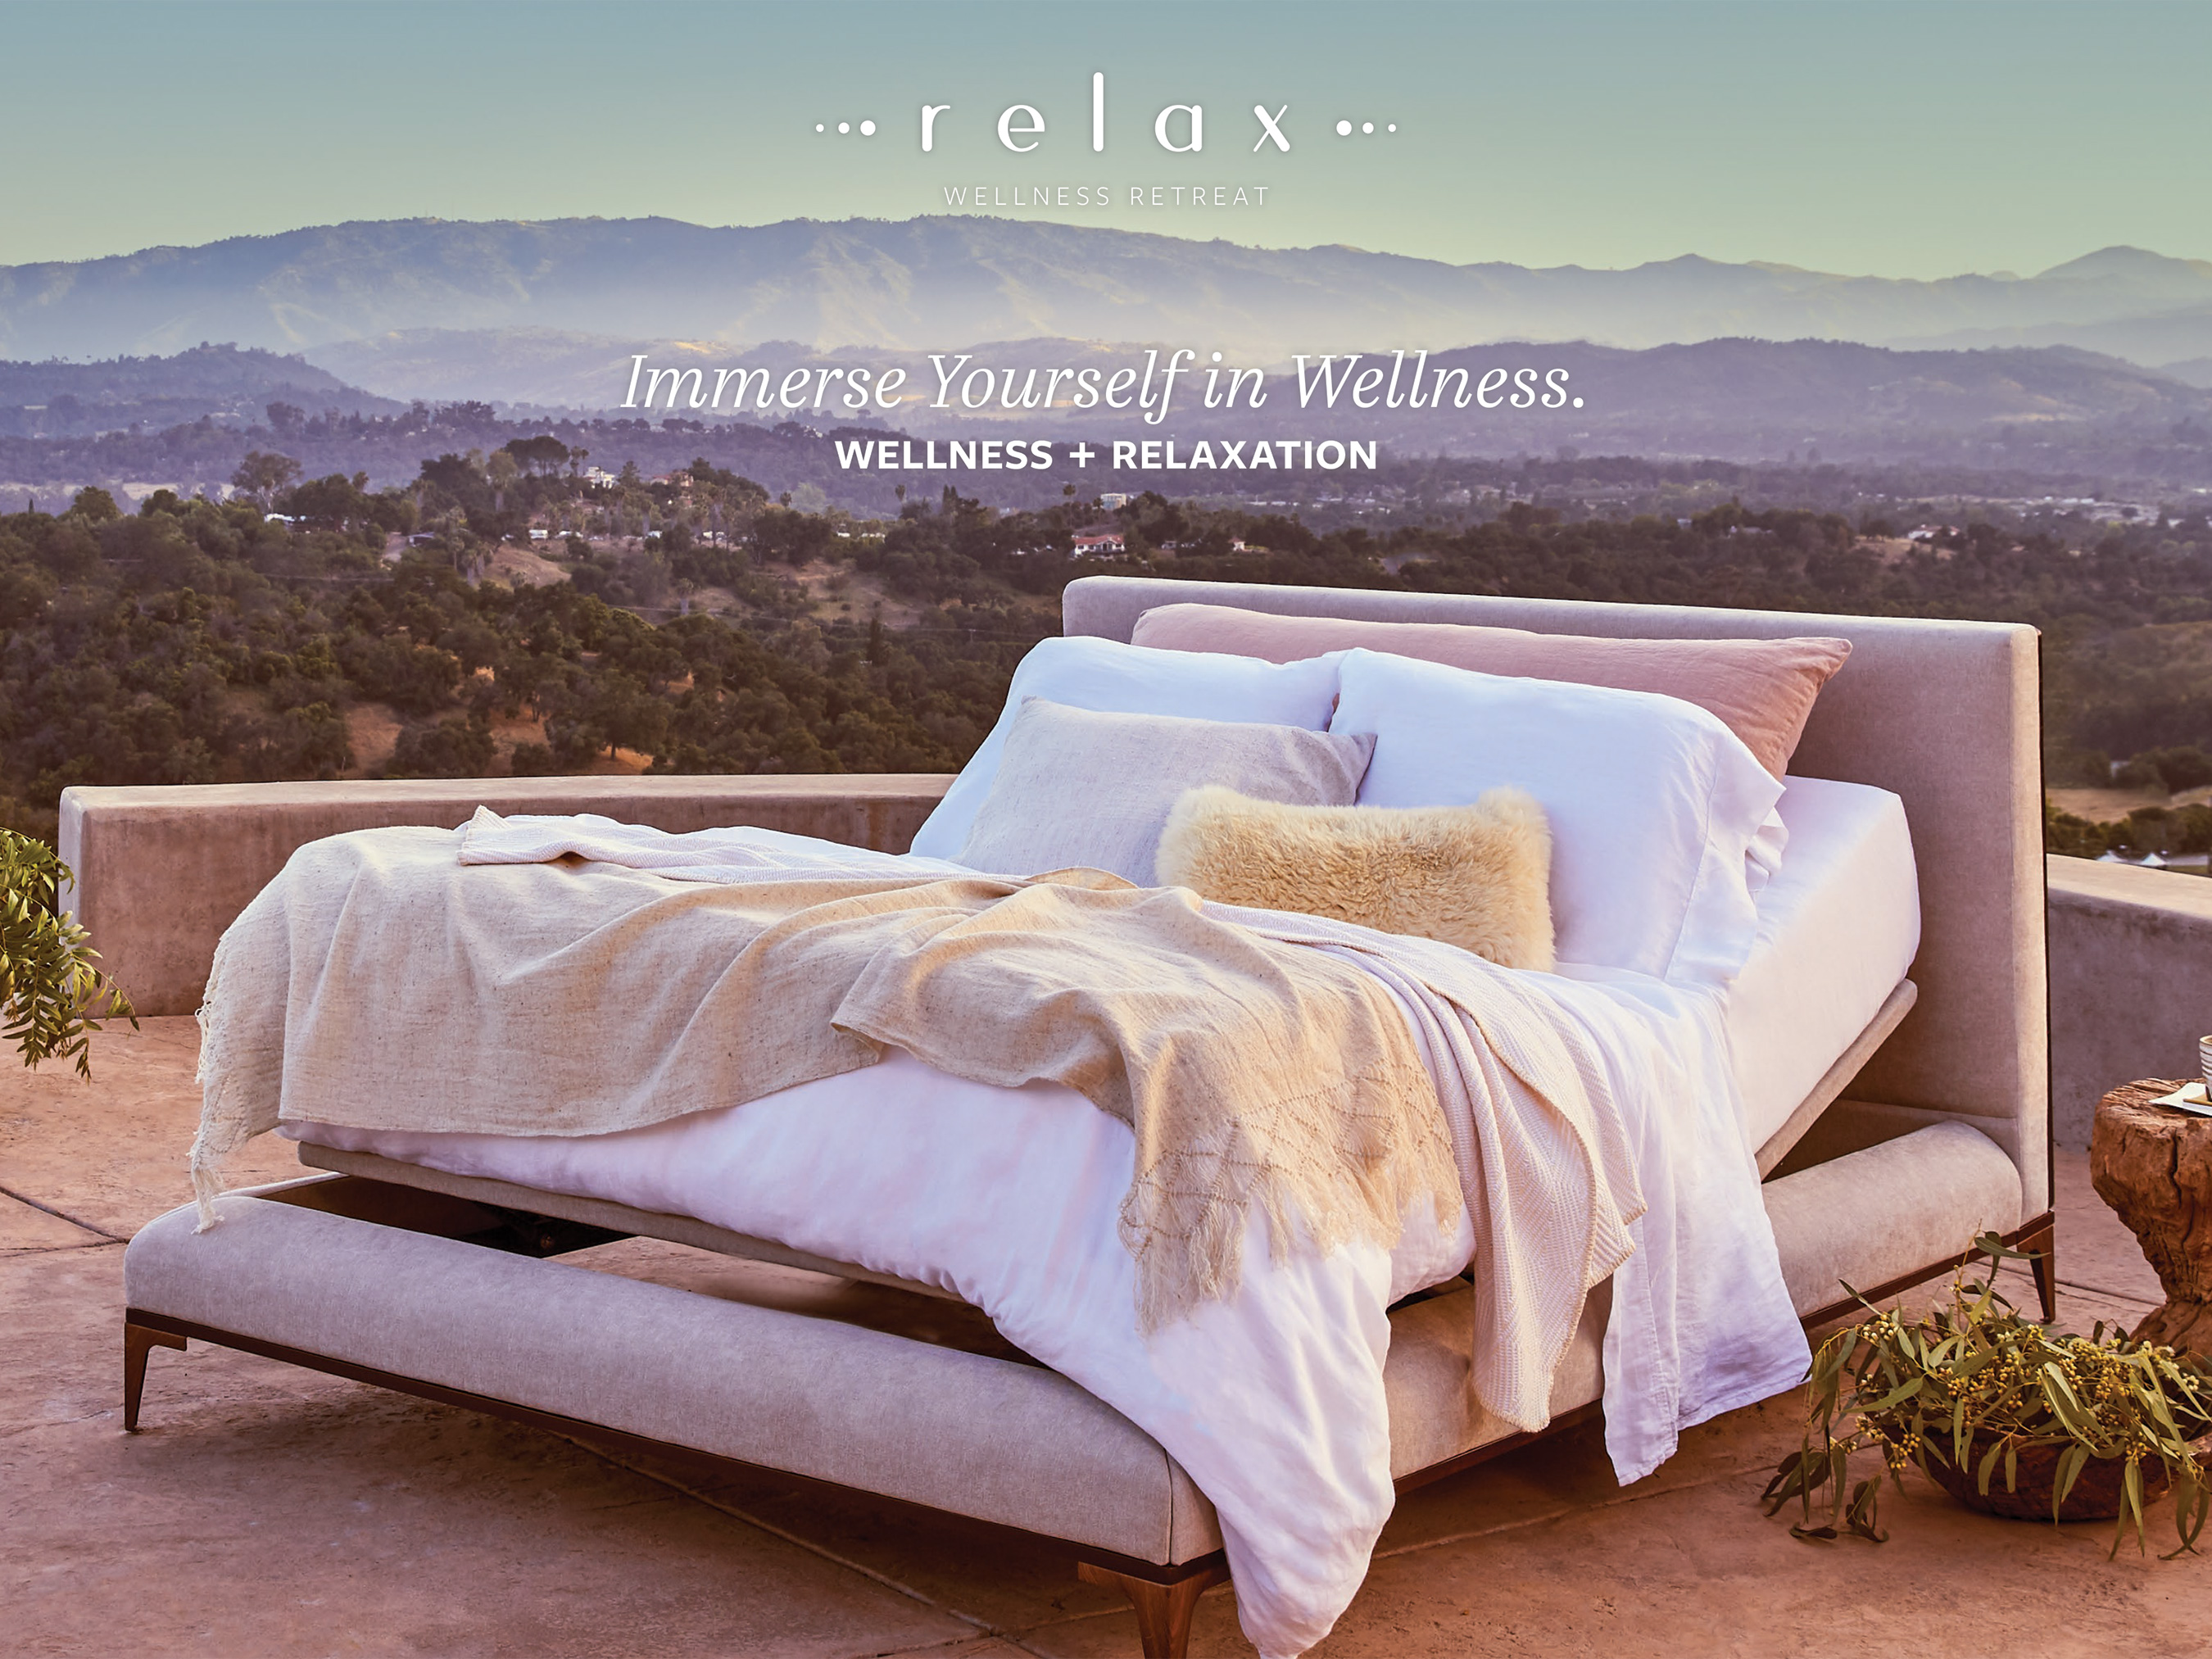 Wellness Retreat, a reinterpretation of the adjustable base category, that soothes the body, refreshes the mind, and rejuvenates the spirit.